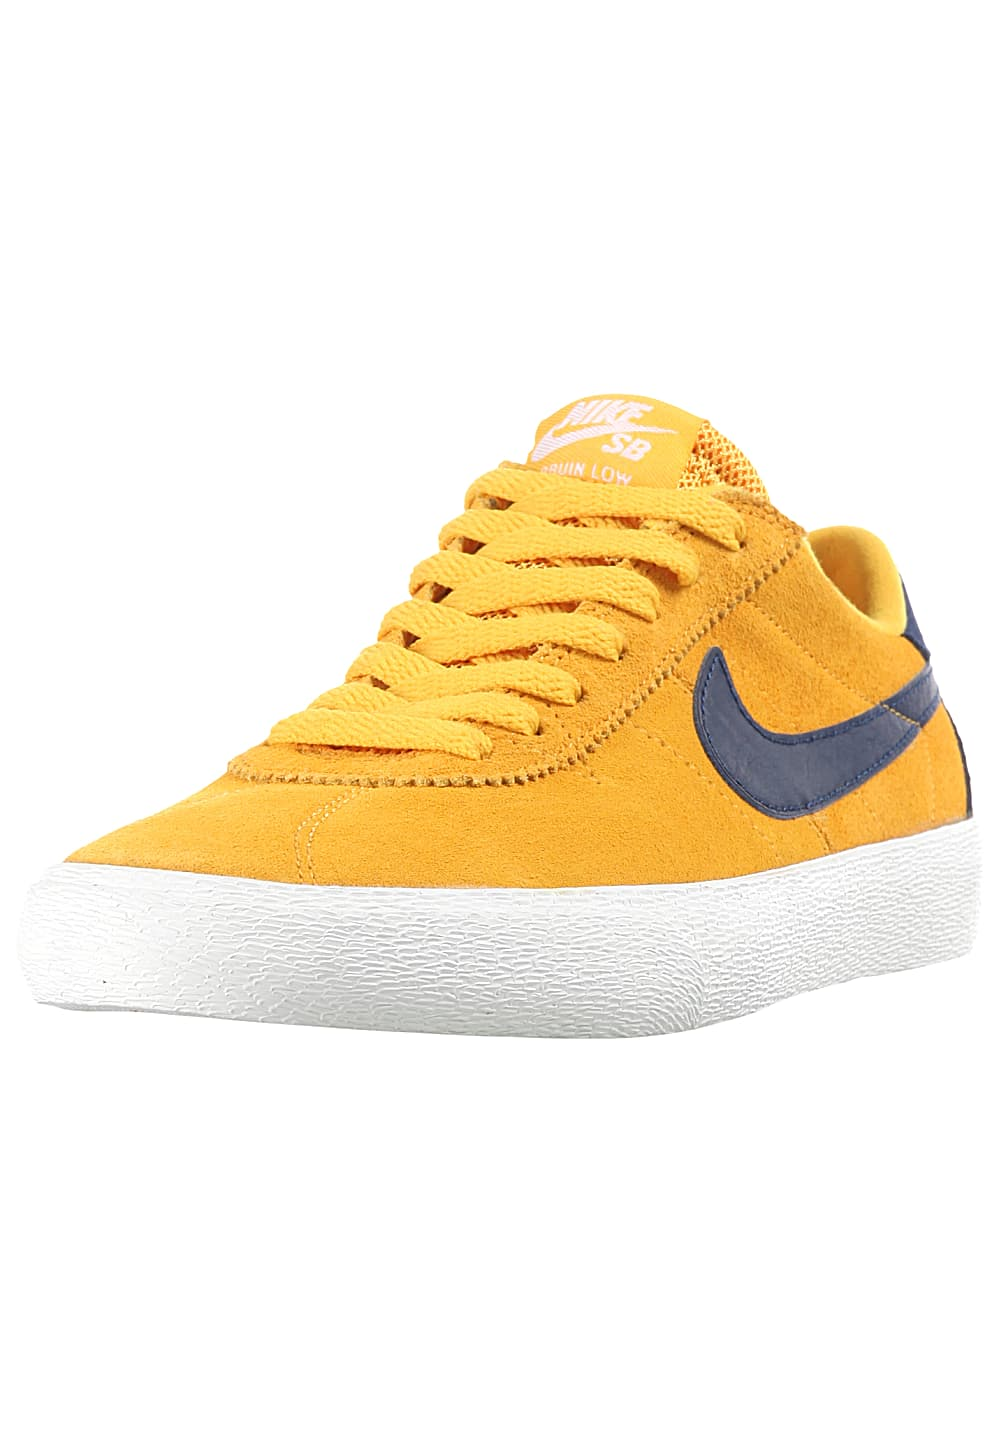 1304daa11245 NIKE SB Bruin Low - Sneakers for Women - Yellow - Planet Sports